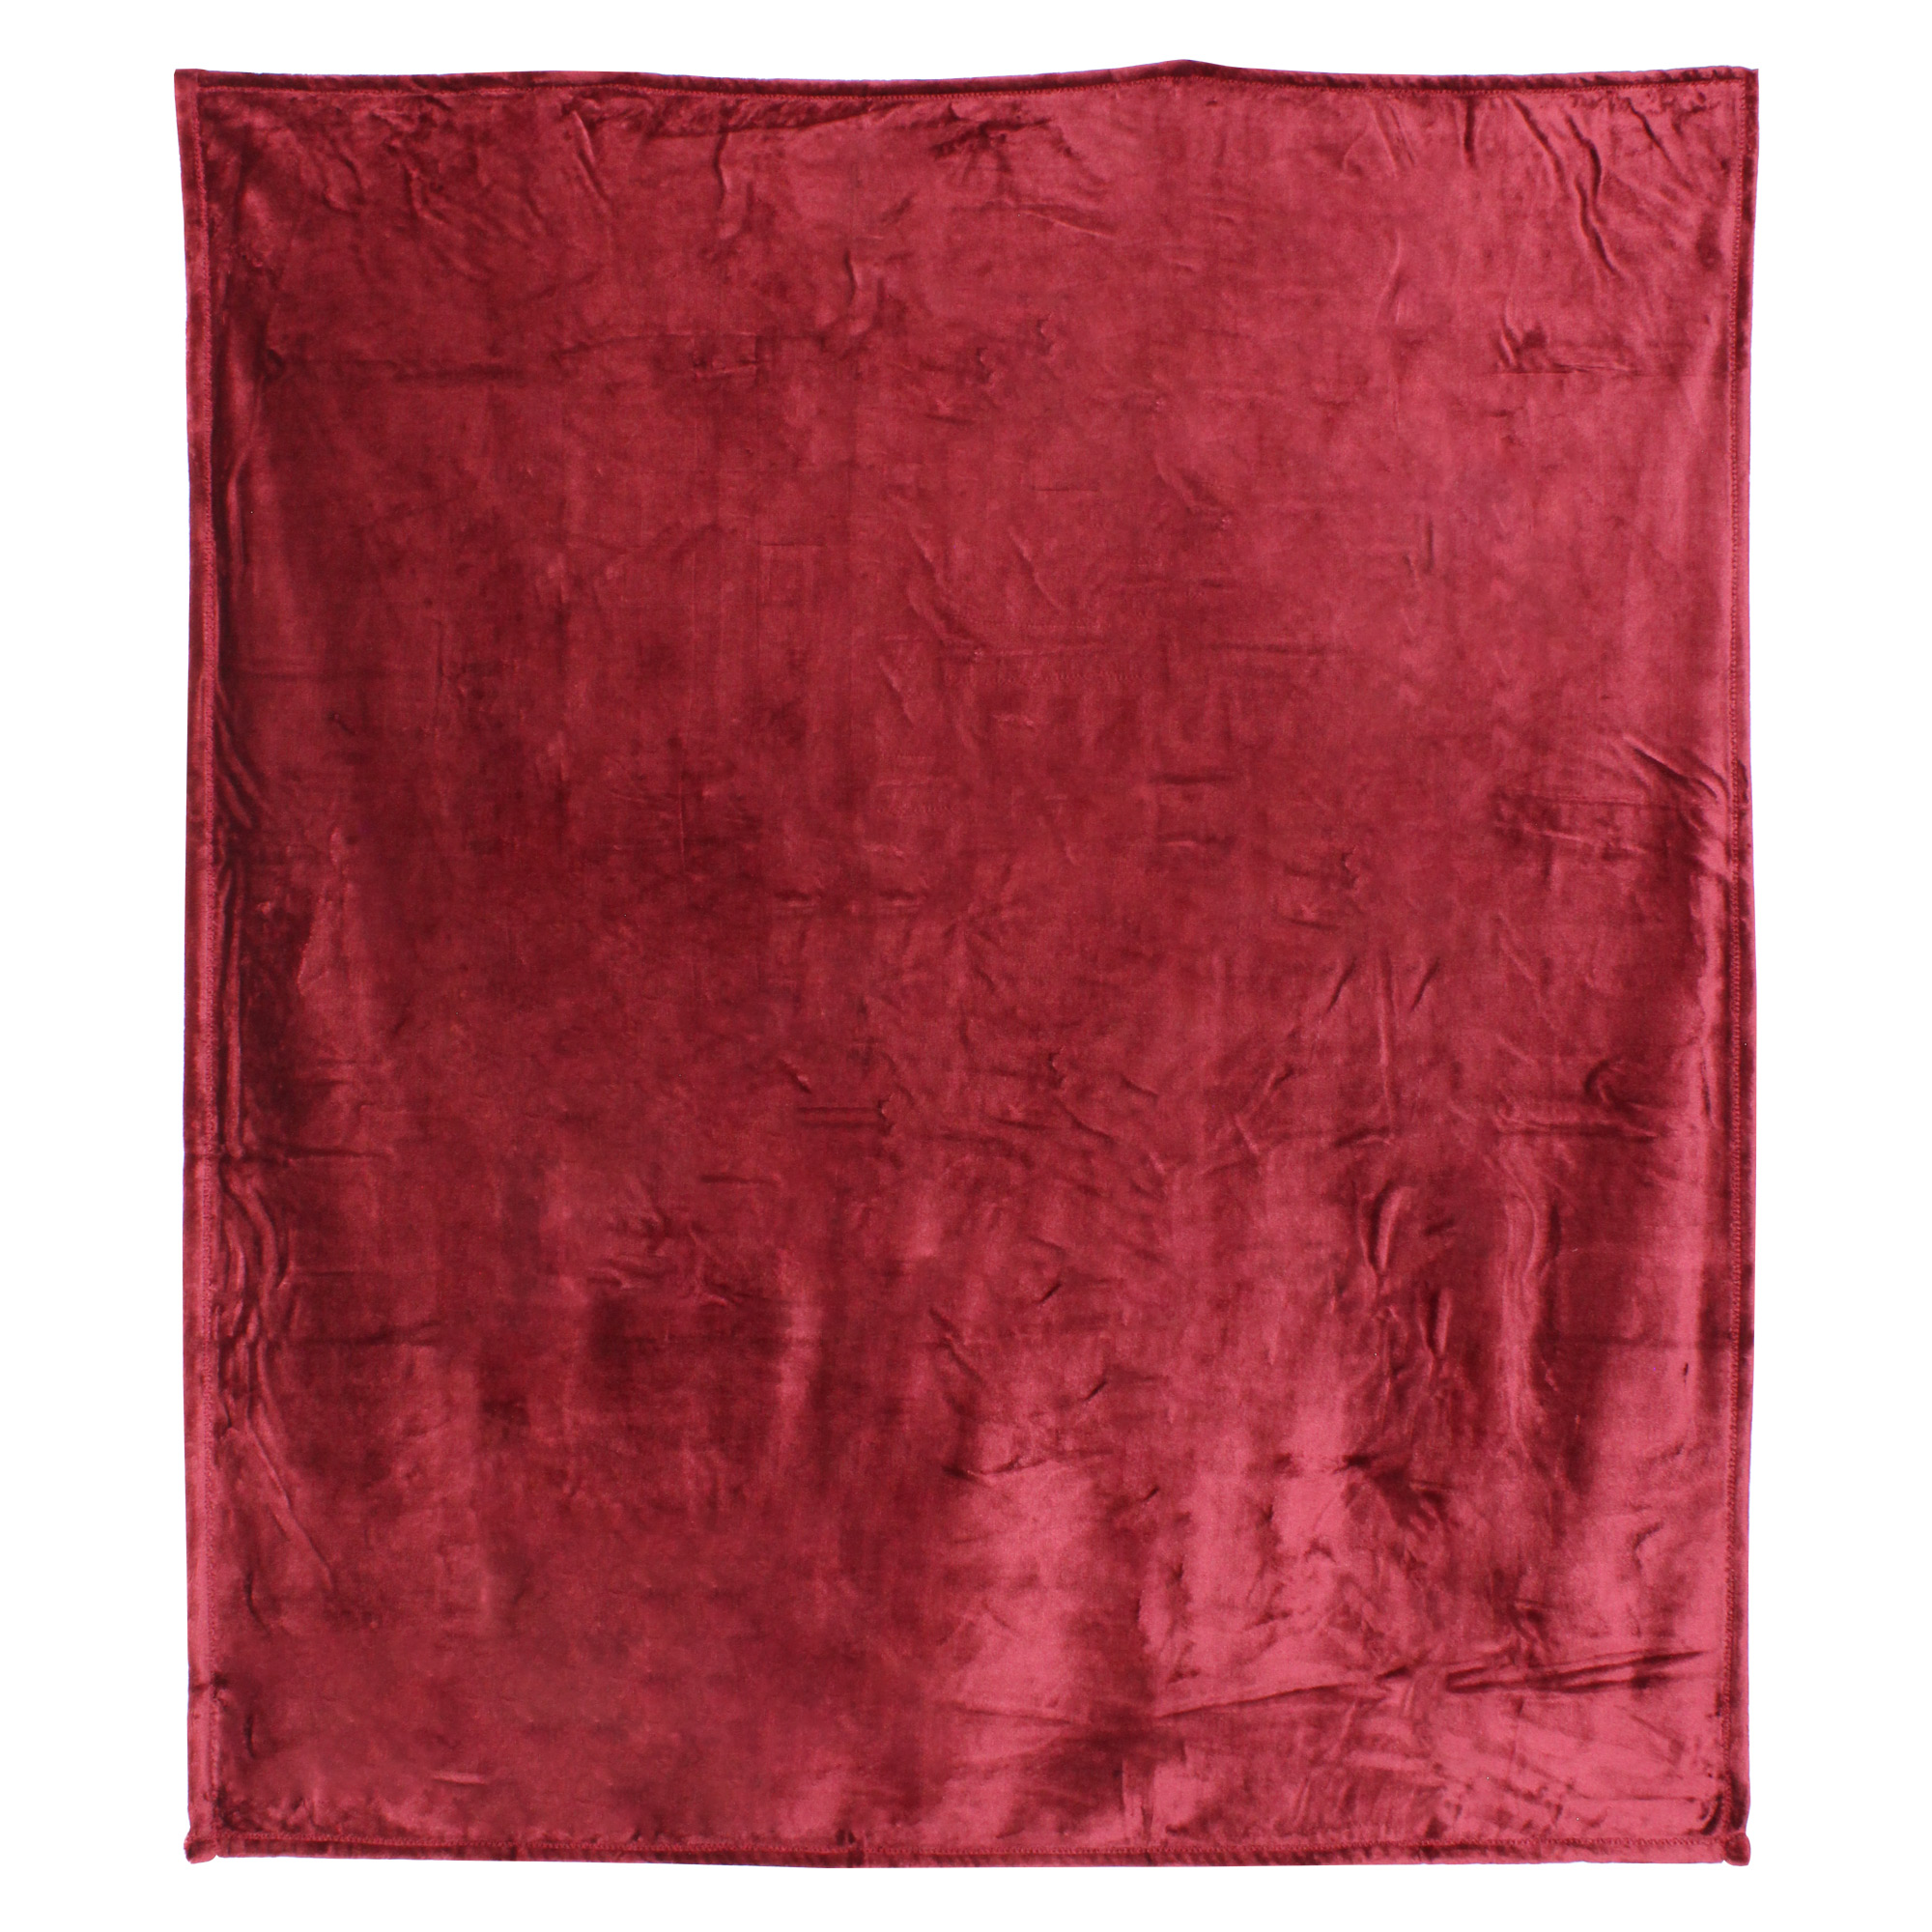 Couverture-polaire-microvelours-180x240-VELVET-Bourgogne-Rouge